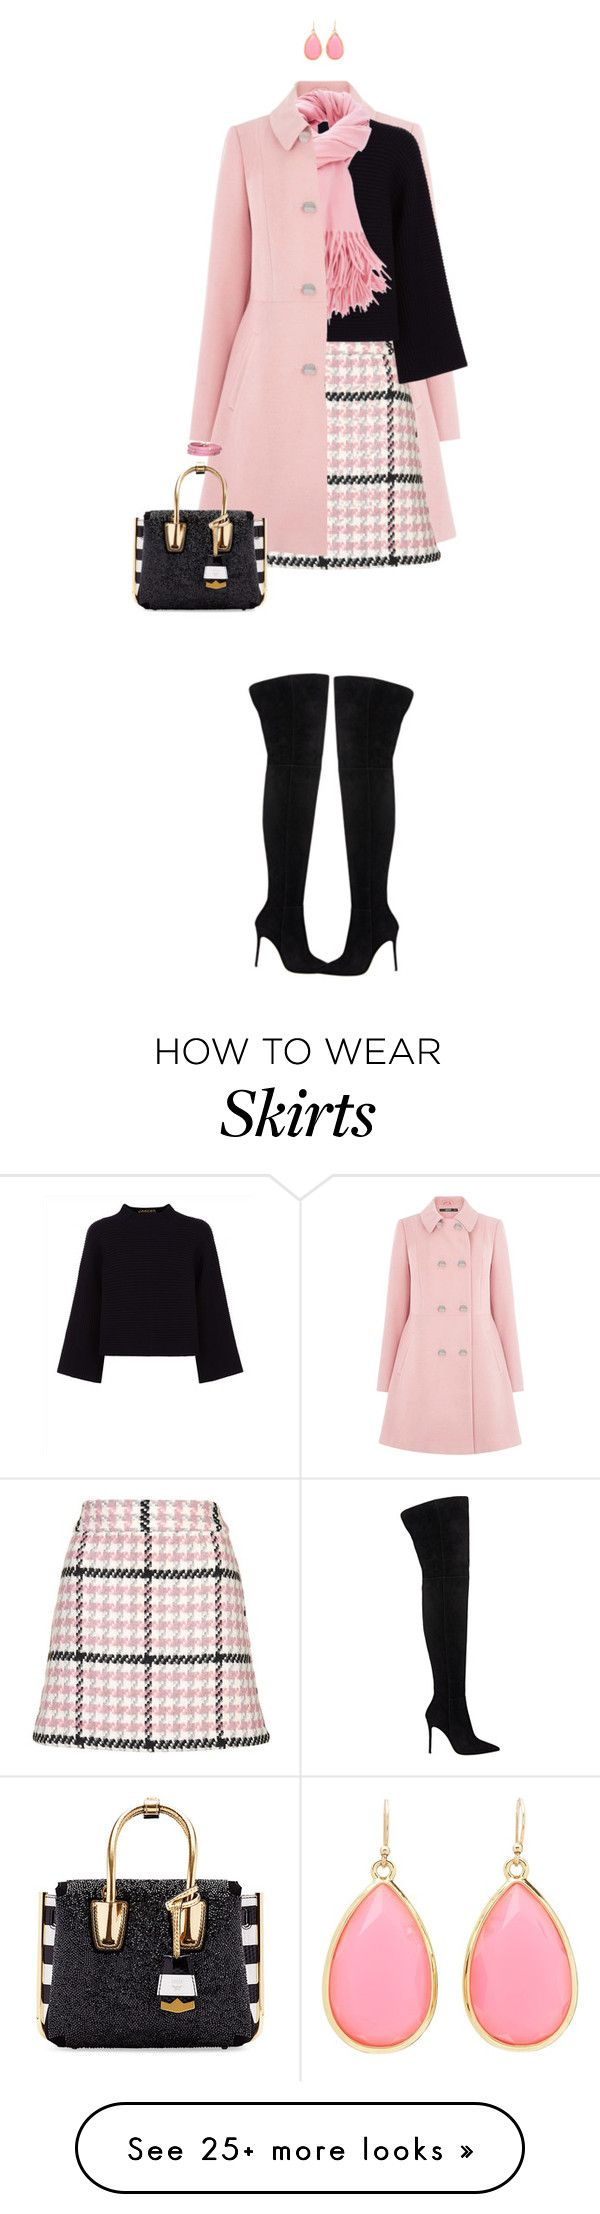 """Skirt In Winter"" by ittie-kittie on Polyvore featuring Oasis, Topshop, Gianvito Rossi, Jaeger, MCM, Kate Spade, Sif Jakobs Jewellery, women's clothing, women and female"